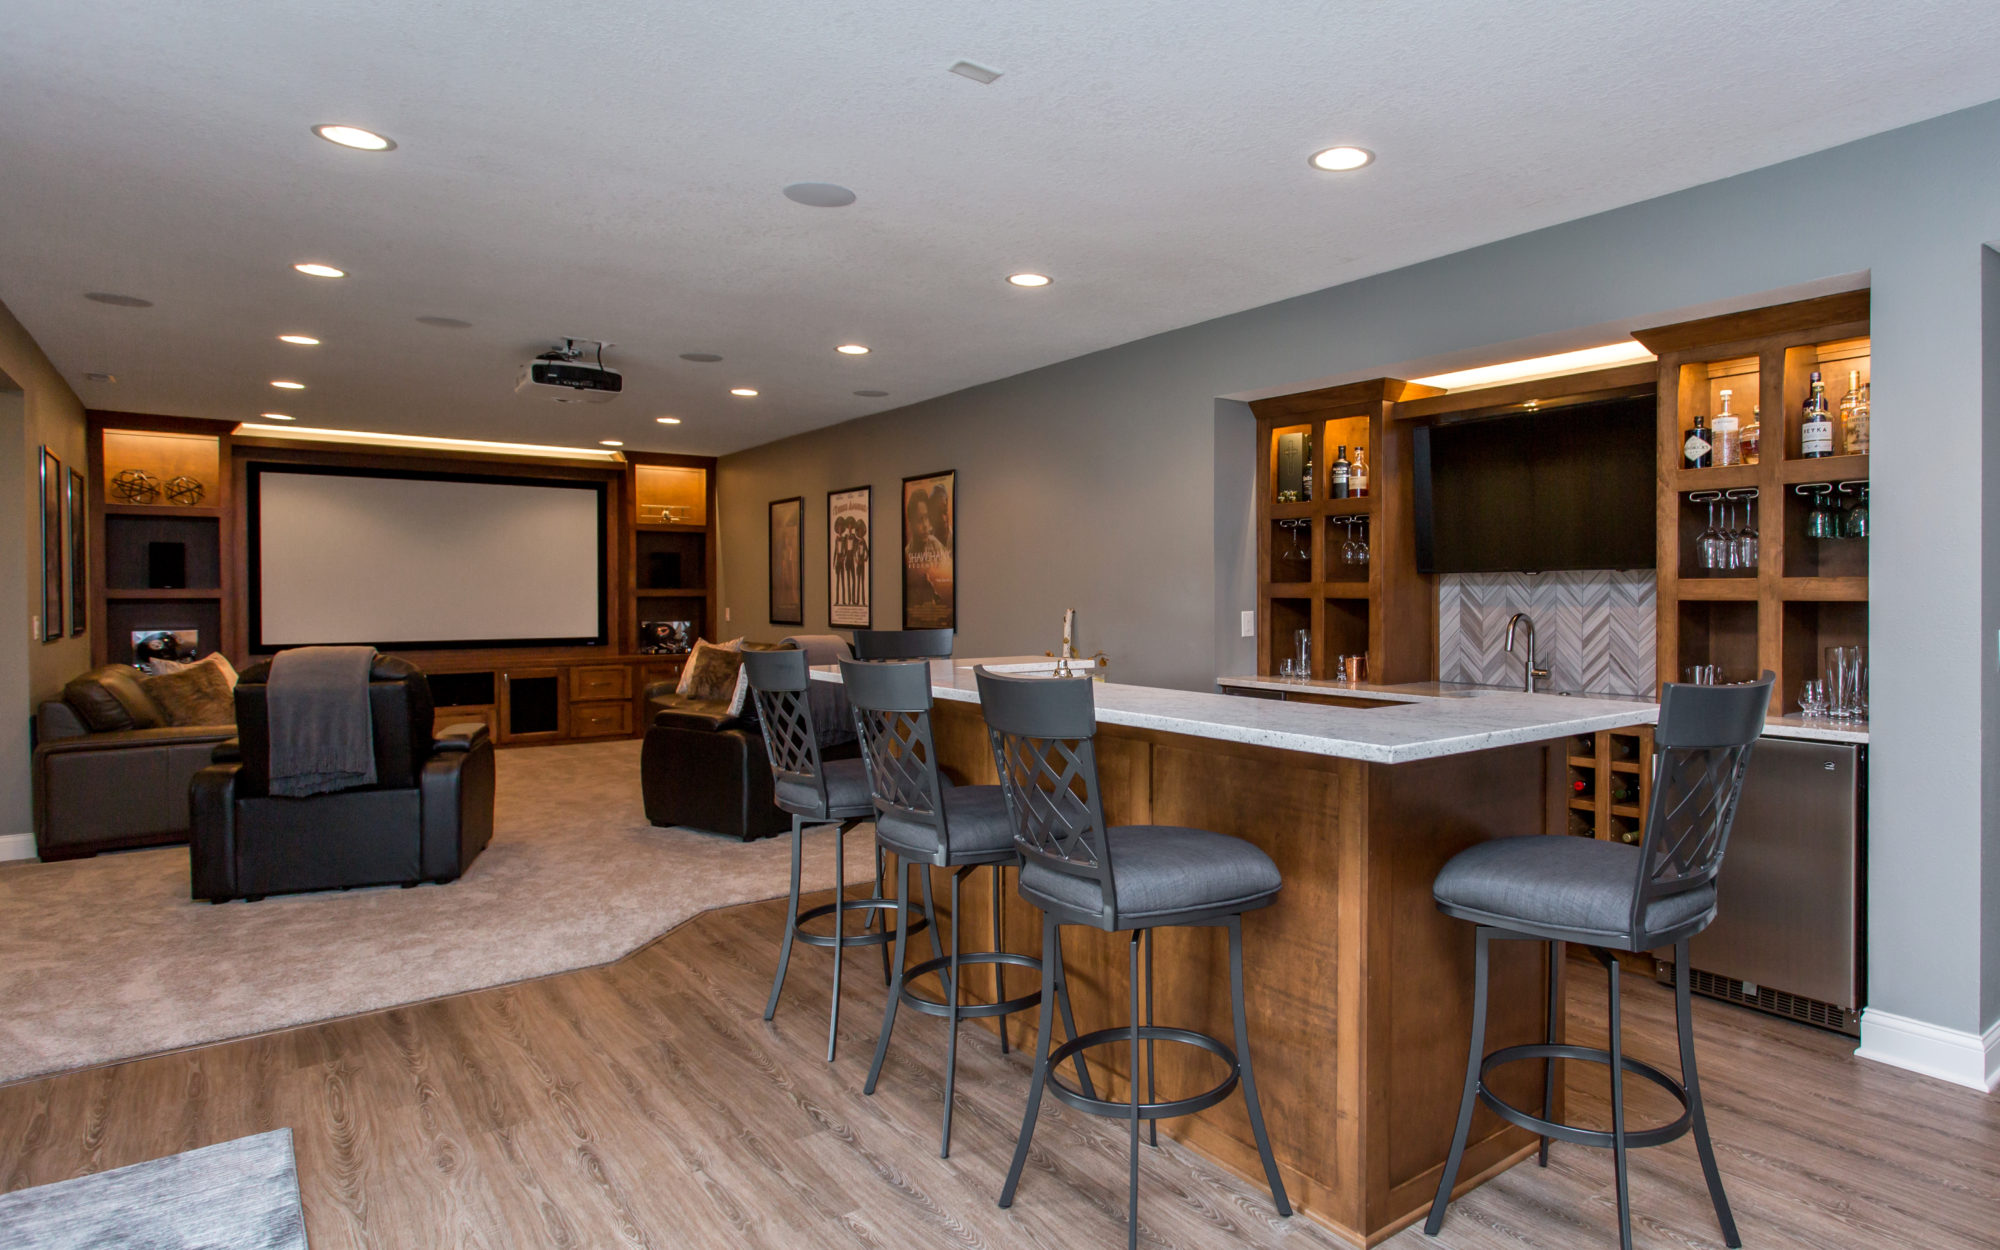 Basement remodeling red house remodeling - Cost to finish basement with bathroom ...